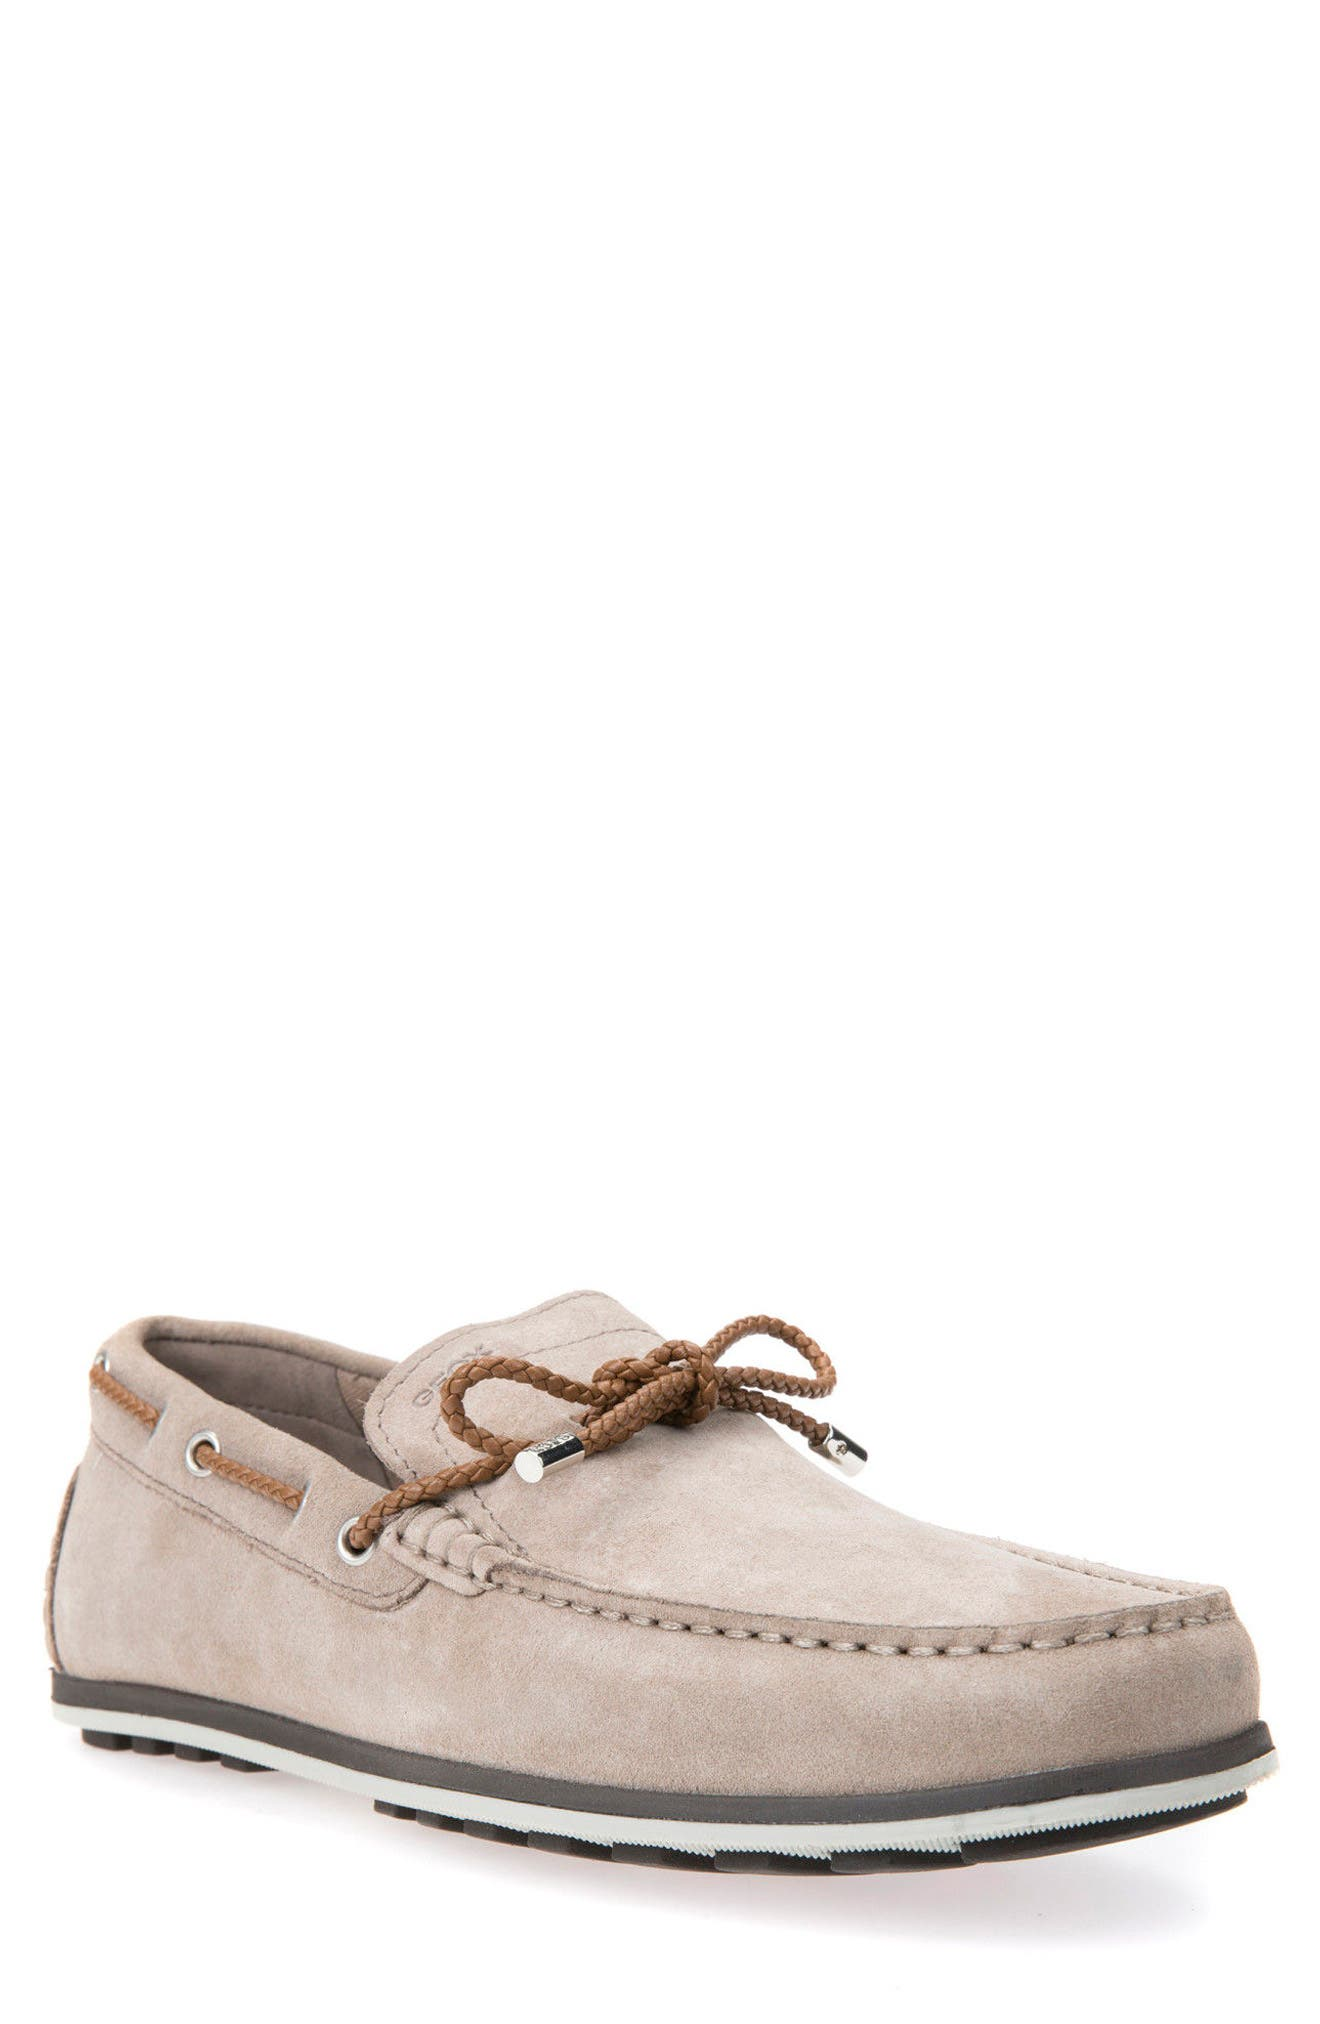 Mirvin 2 Boat Shoe,                             Main thumbnail 1, color,                             Taupe Suede